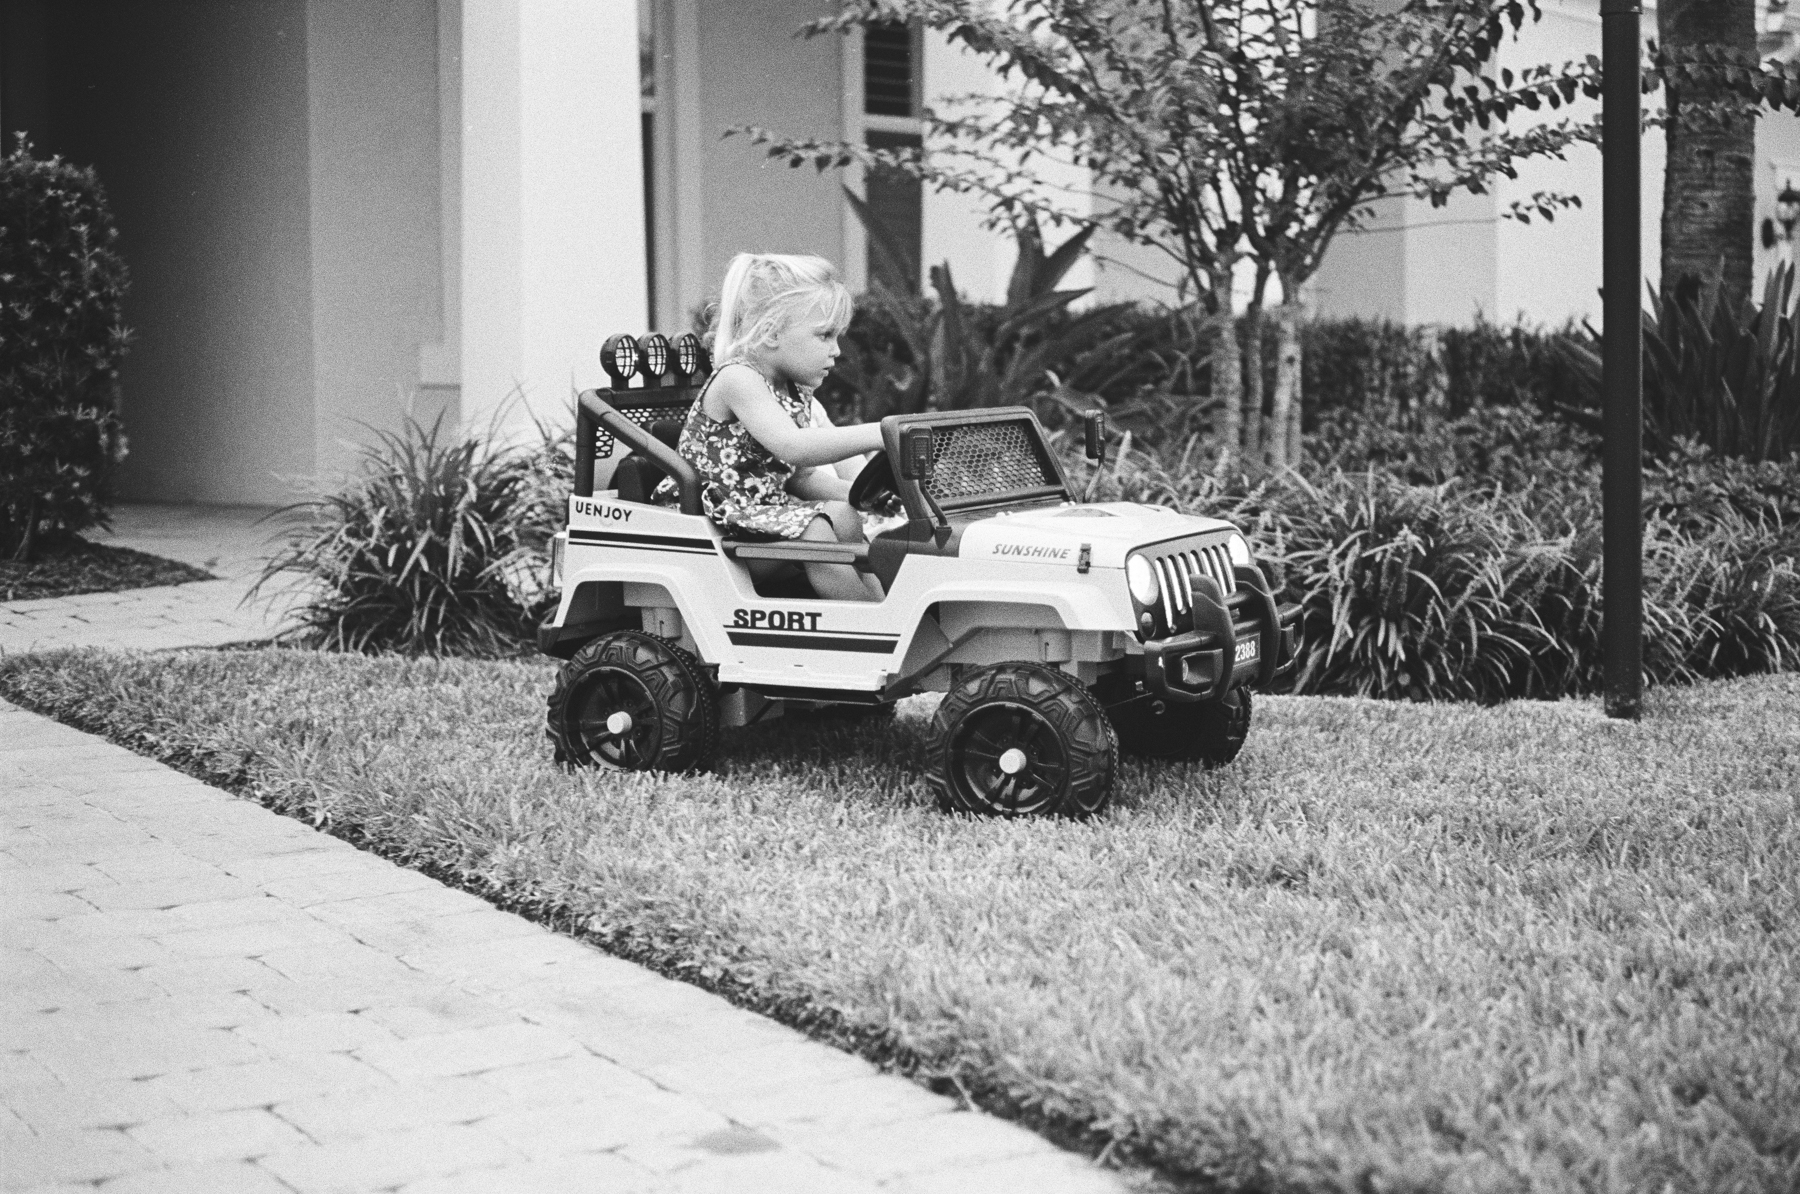 TriX-400-Kids-Jeeping-3.jpg